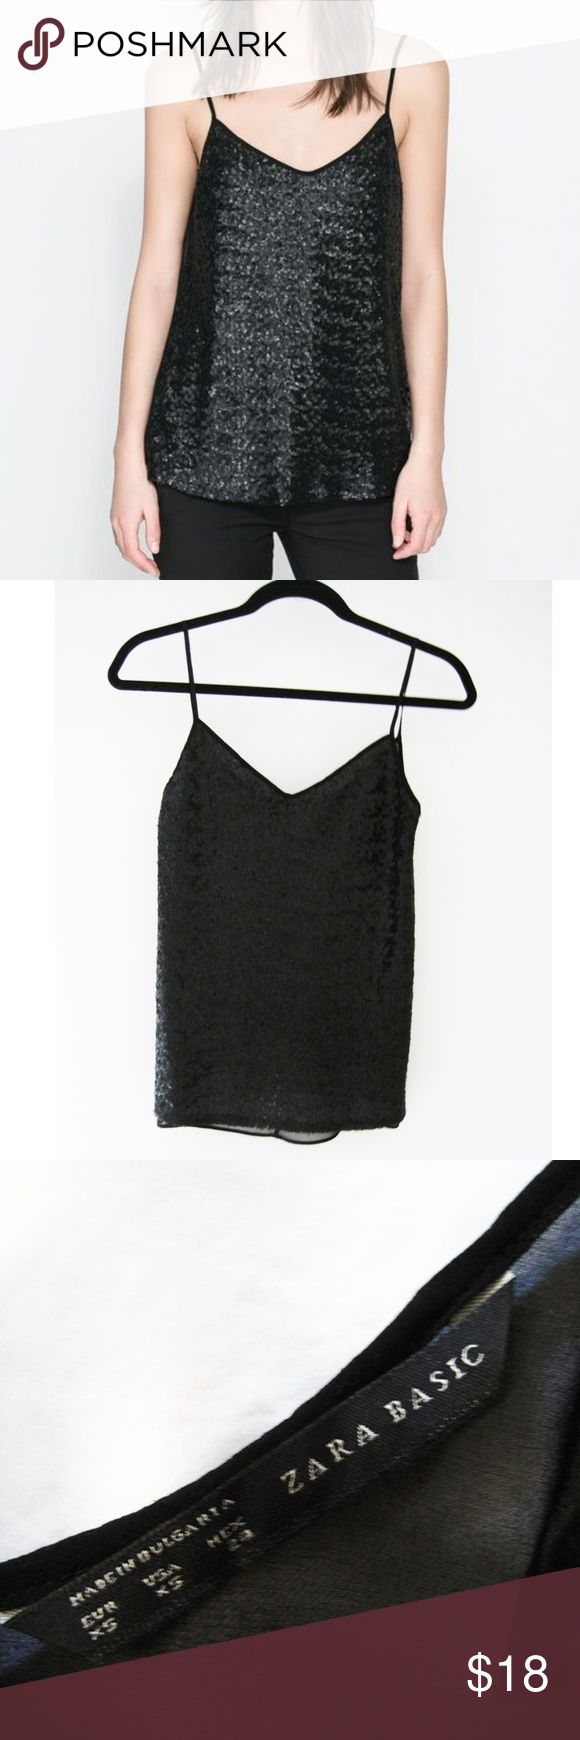 """Zara Black Sequin V-Neck Sheer Back Cami XS Black sequin v-neck camisole top featuring a sheer back. Pair it with trousers and a jacket for a played down look or dress it up with a skirt and accessories for a party look. Excellent condition-only worn once. Smoke/pet-free home. Feel free to ask questions! All images are my own except for the first photo. Credited to Zara online image. Measurements: Front Length (shoulder to hem): 23 1/2"""" approx. Center Front Length: 16""""  Bust: 33"""" approx…"""